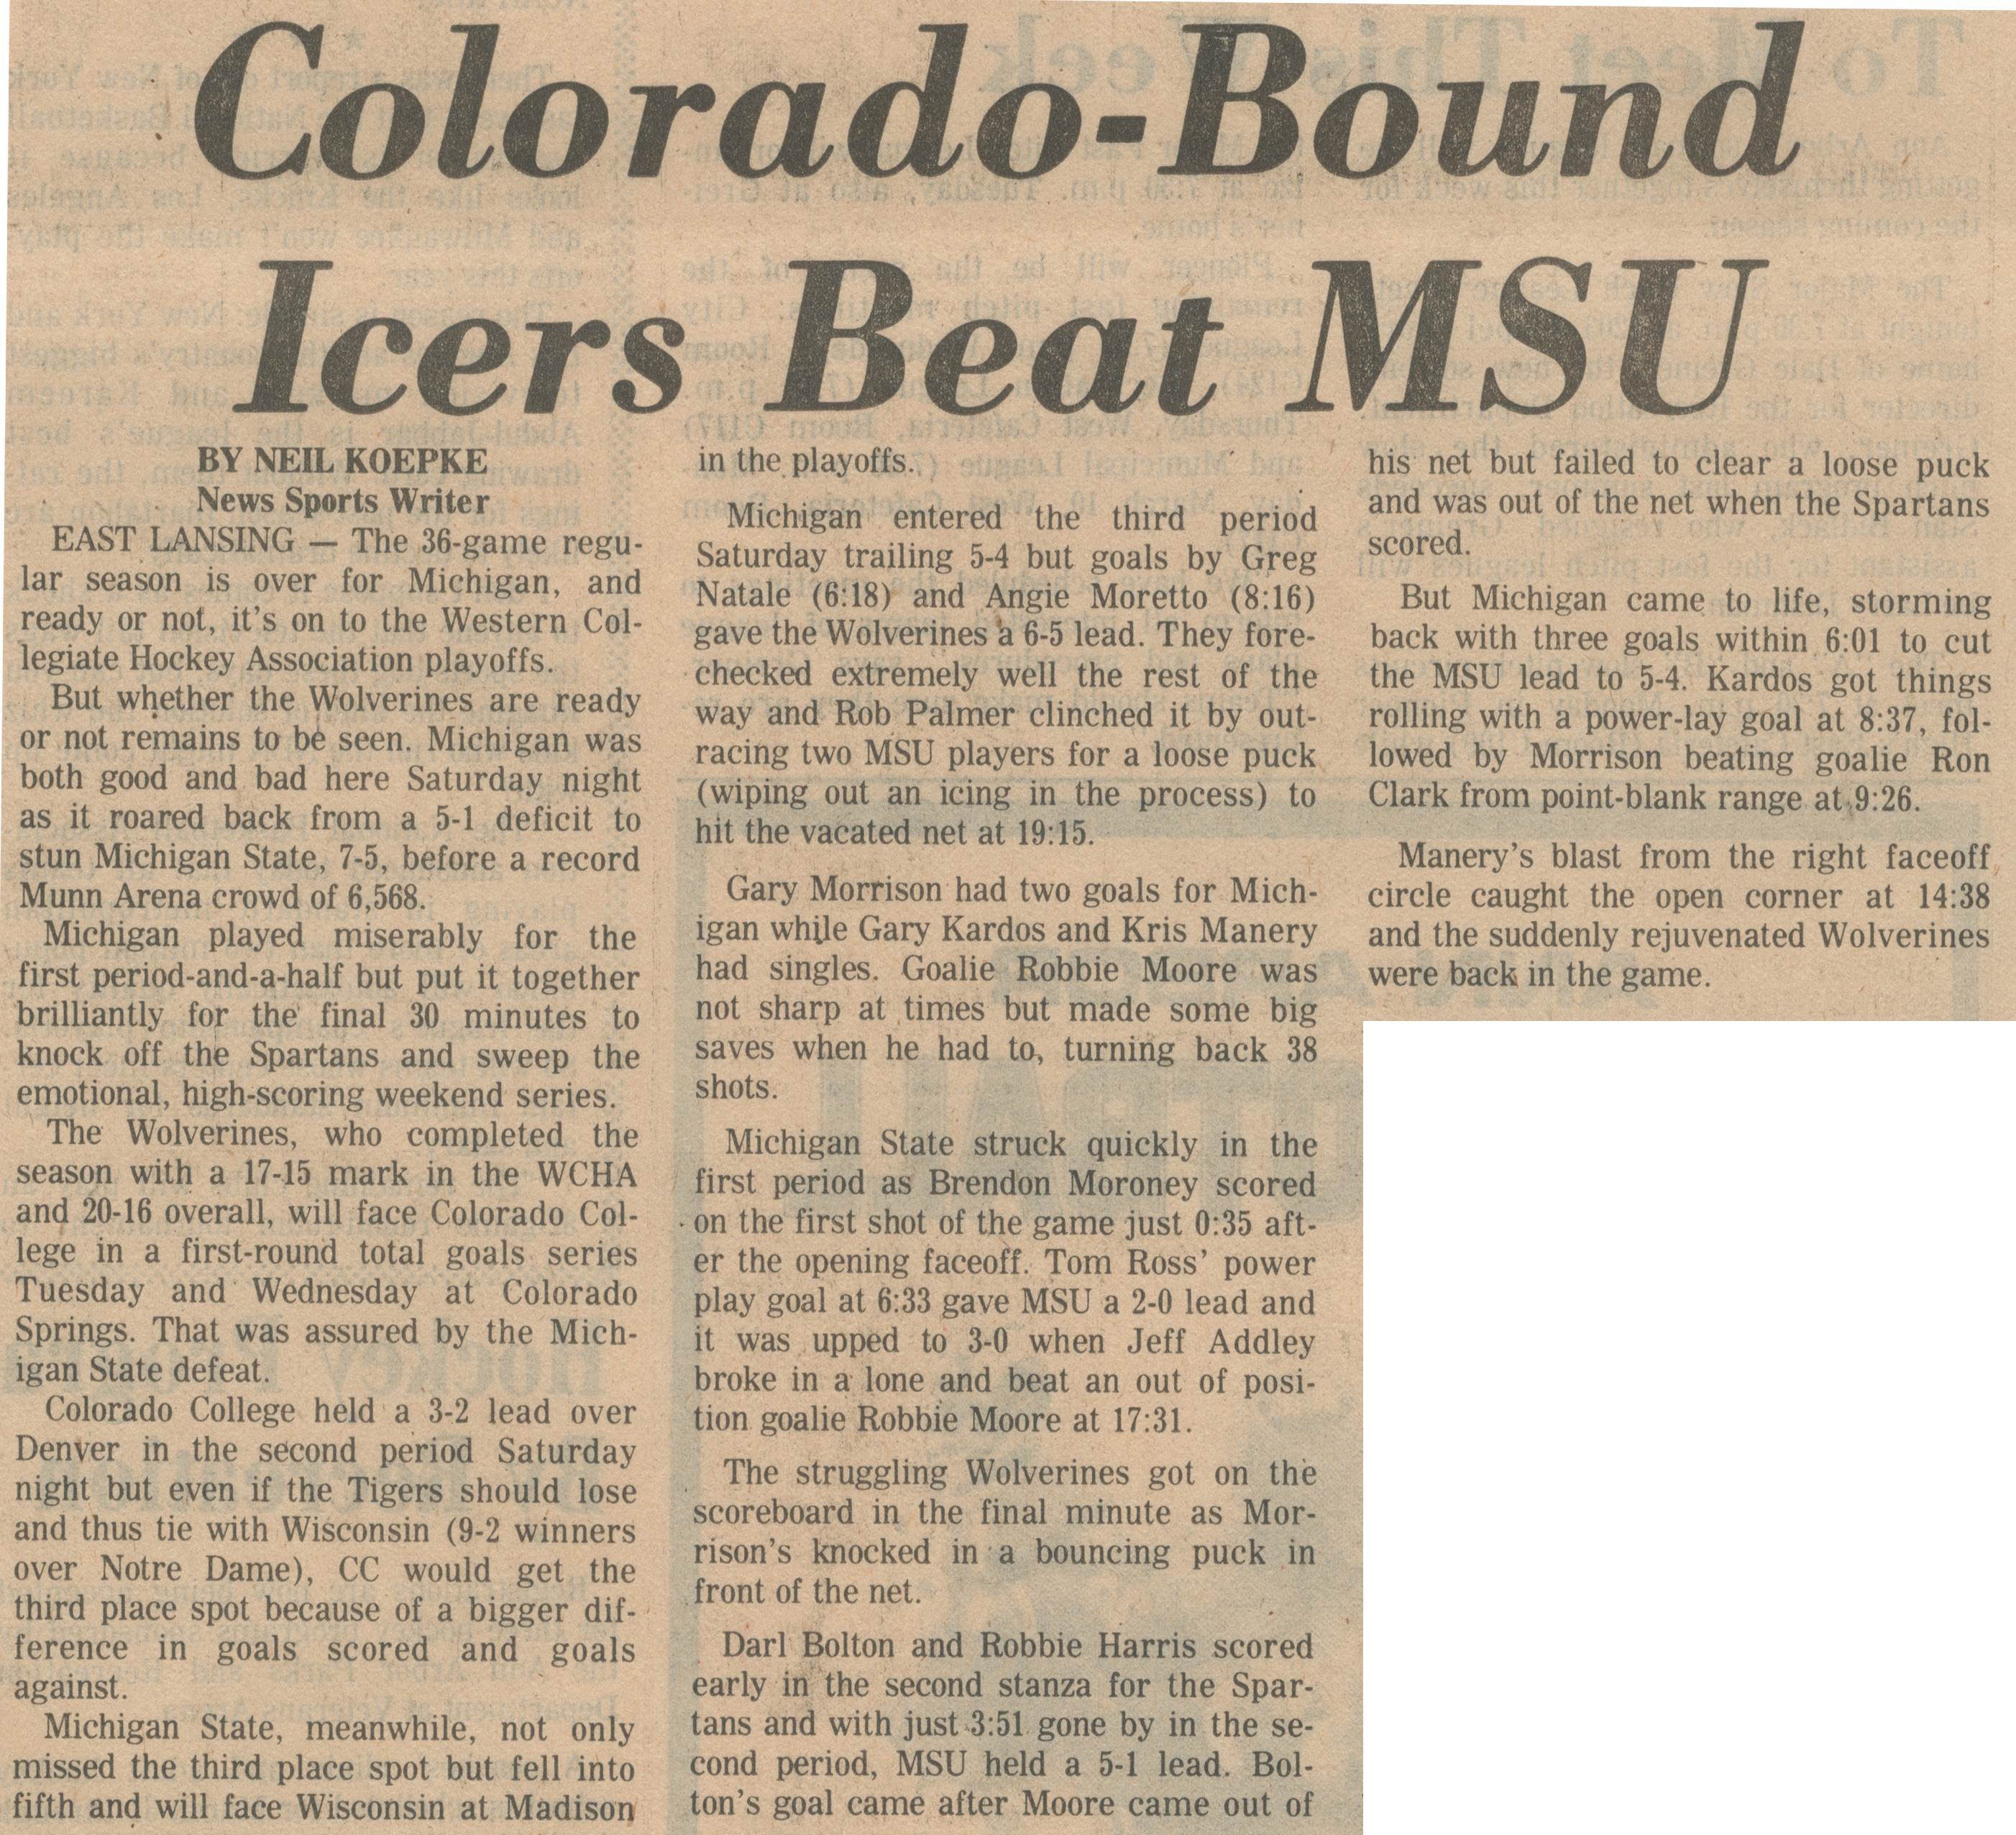 Colorado-Bound Icers Beat MSU image